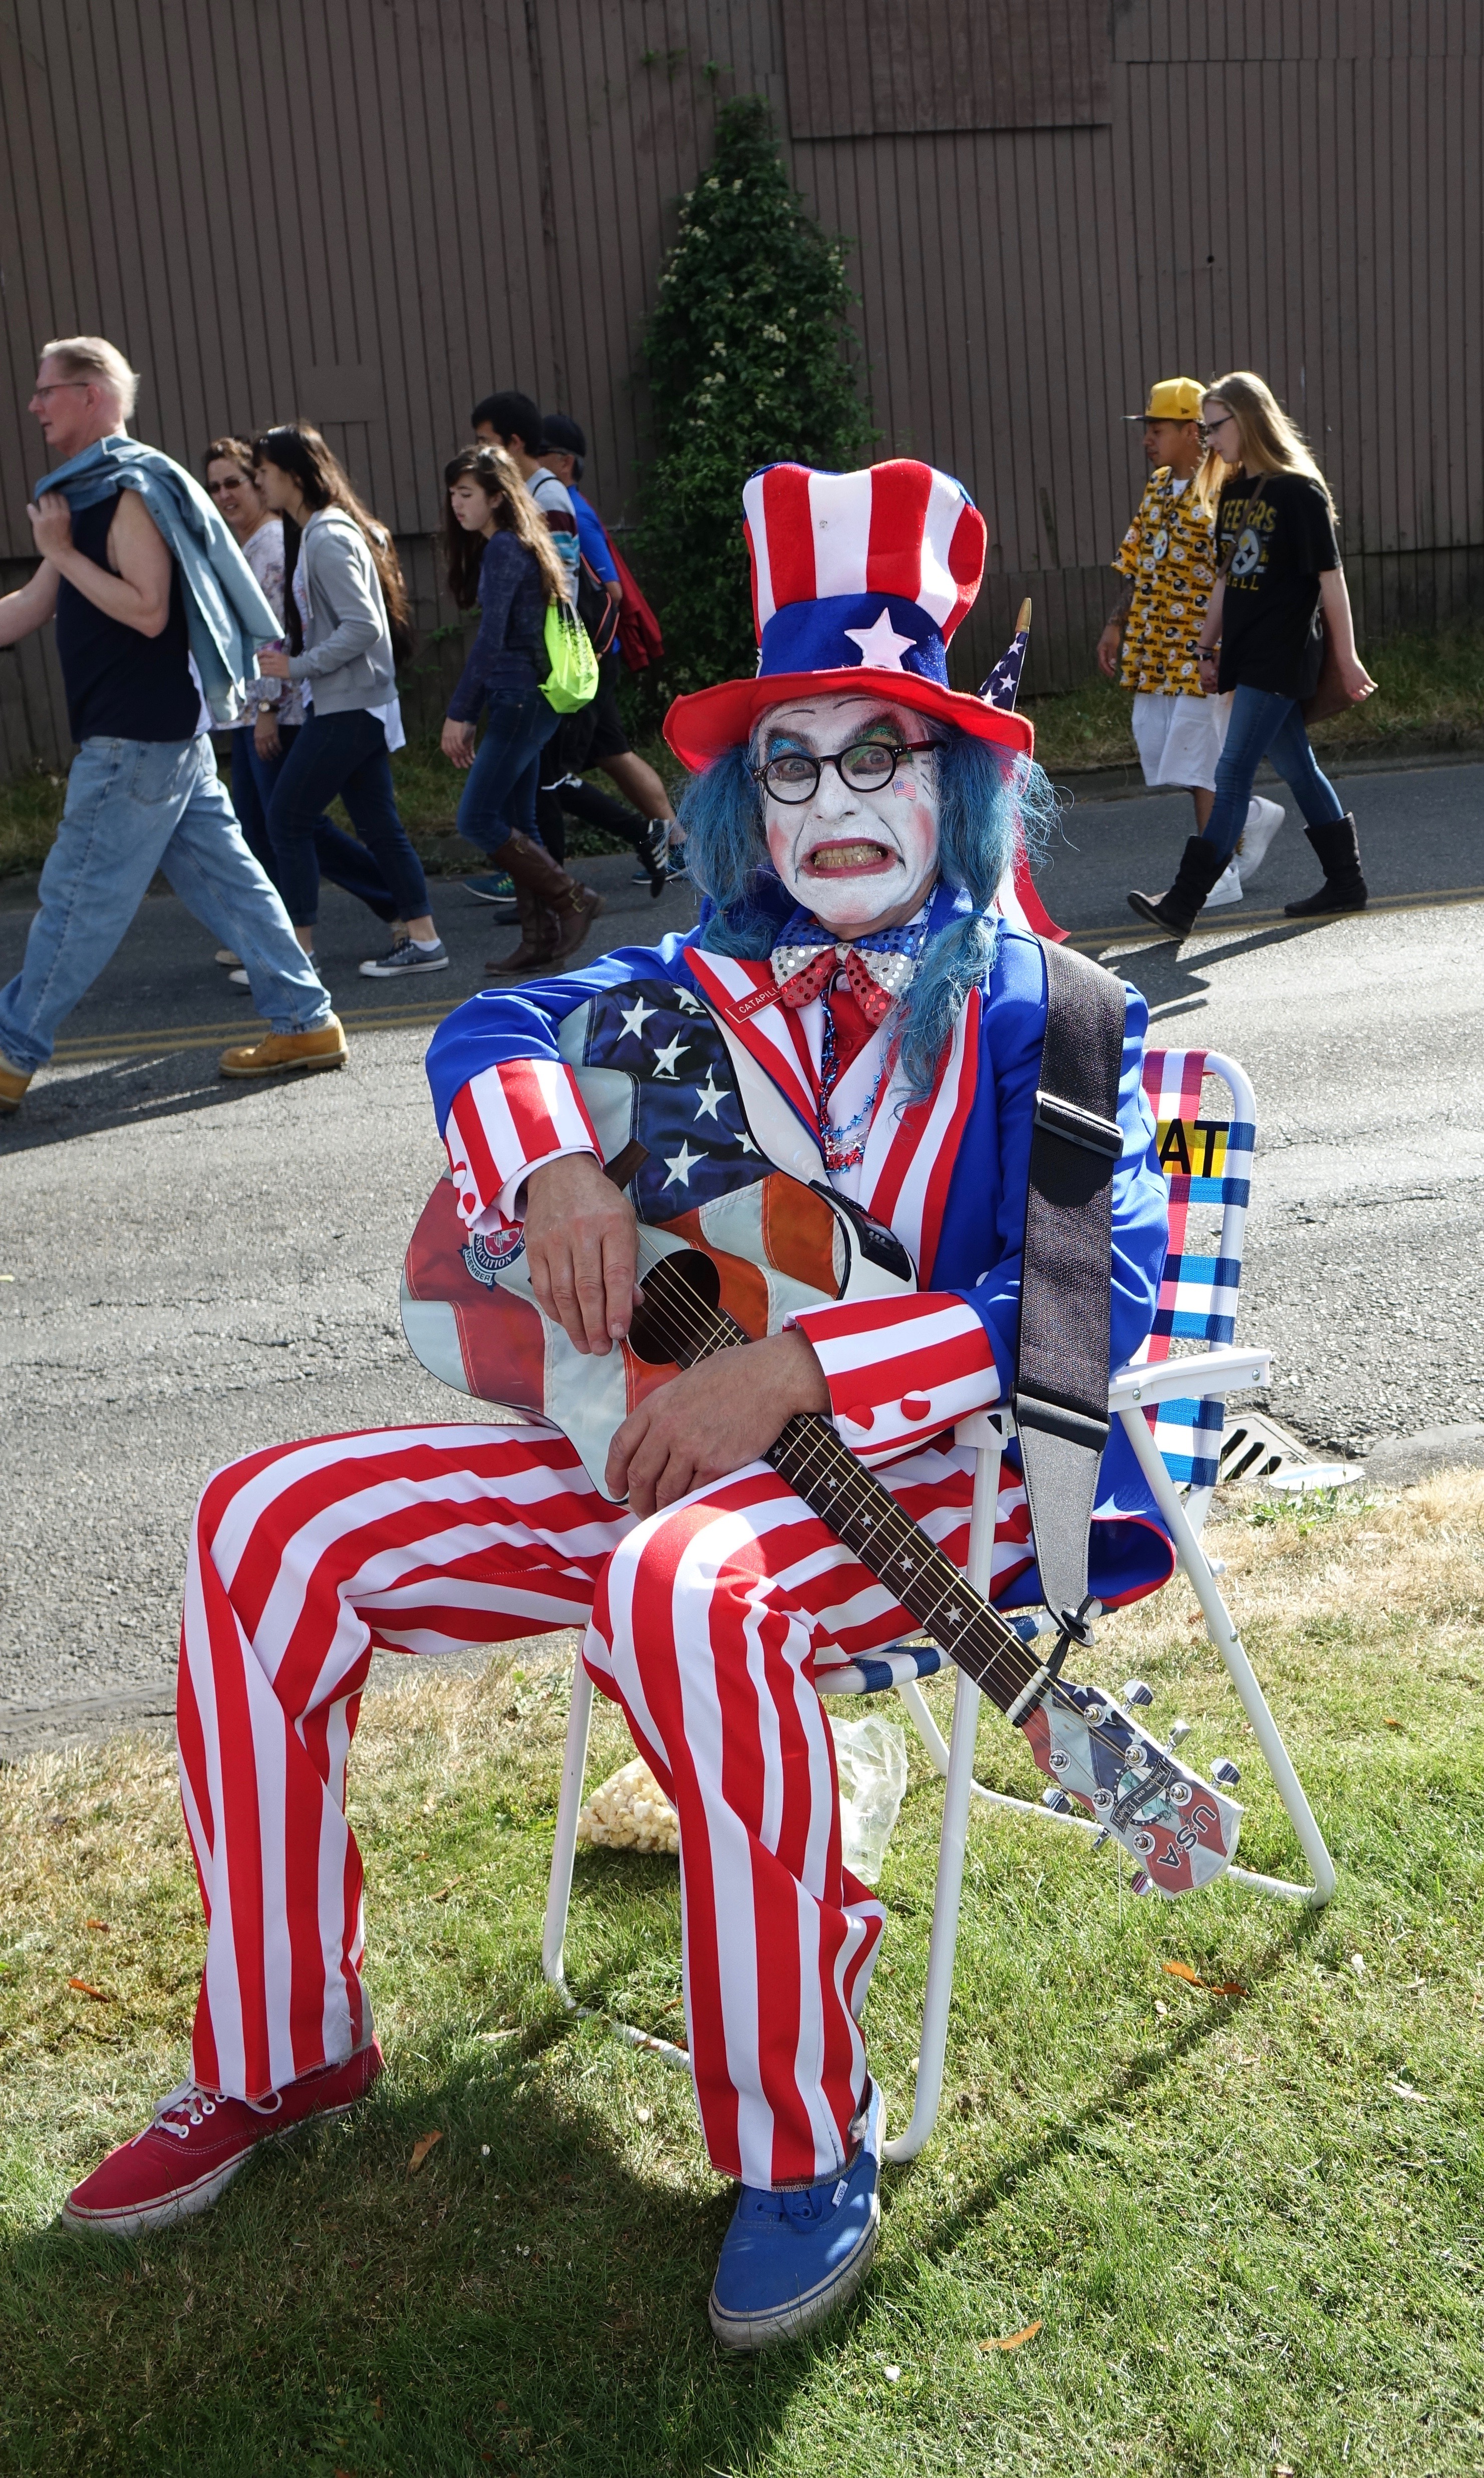 Uncle Sam is looking unhappy this election year.